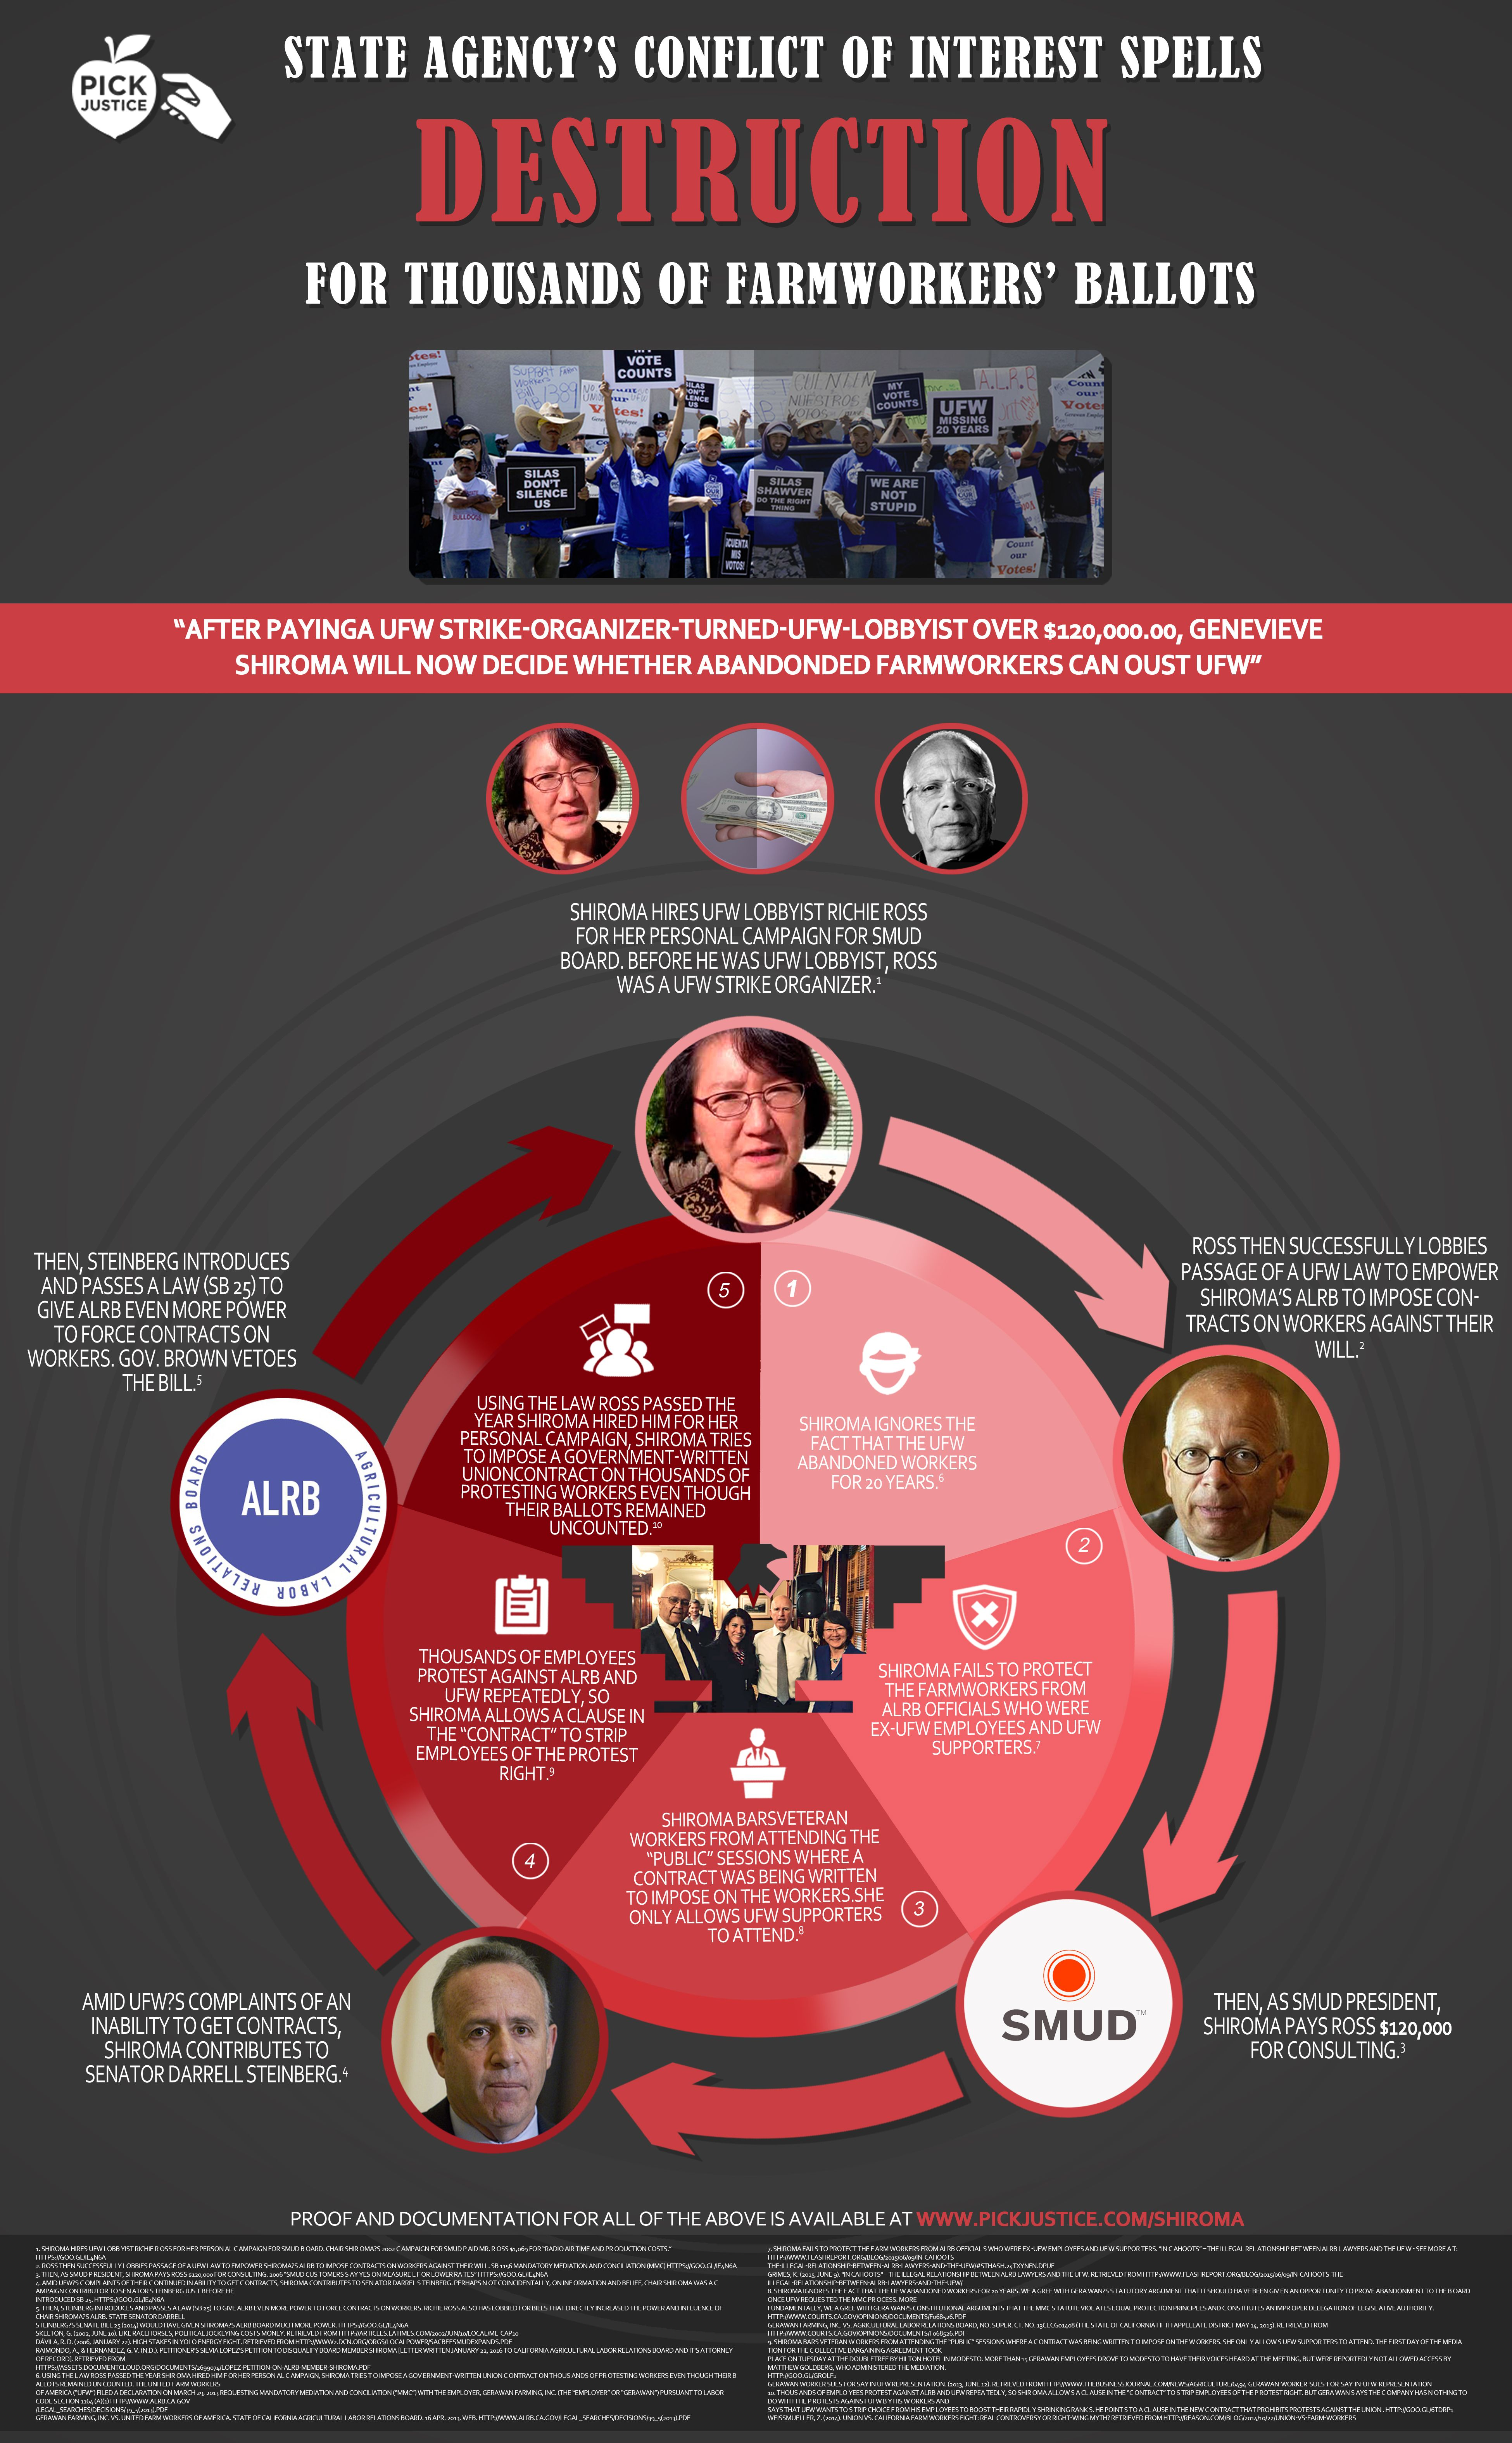 State Agency's conflict of Interest Spells  #design #infographic